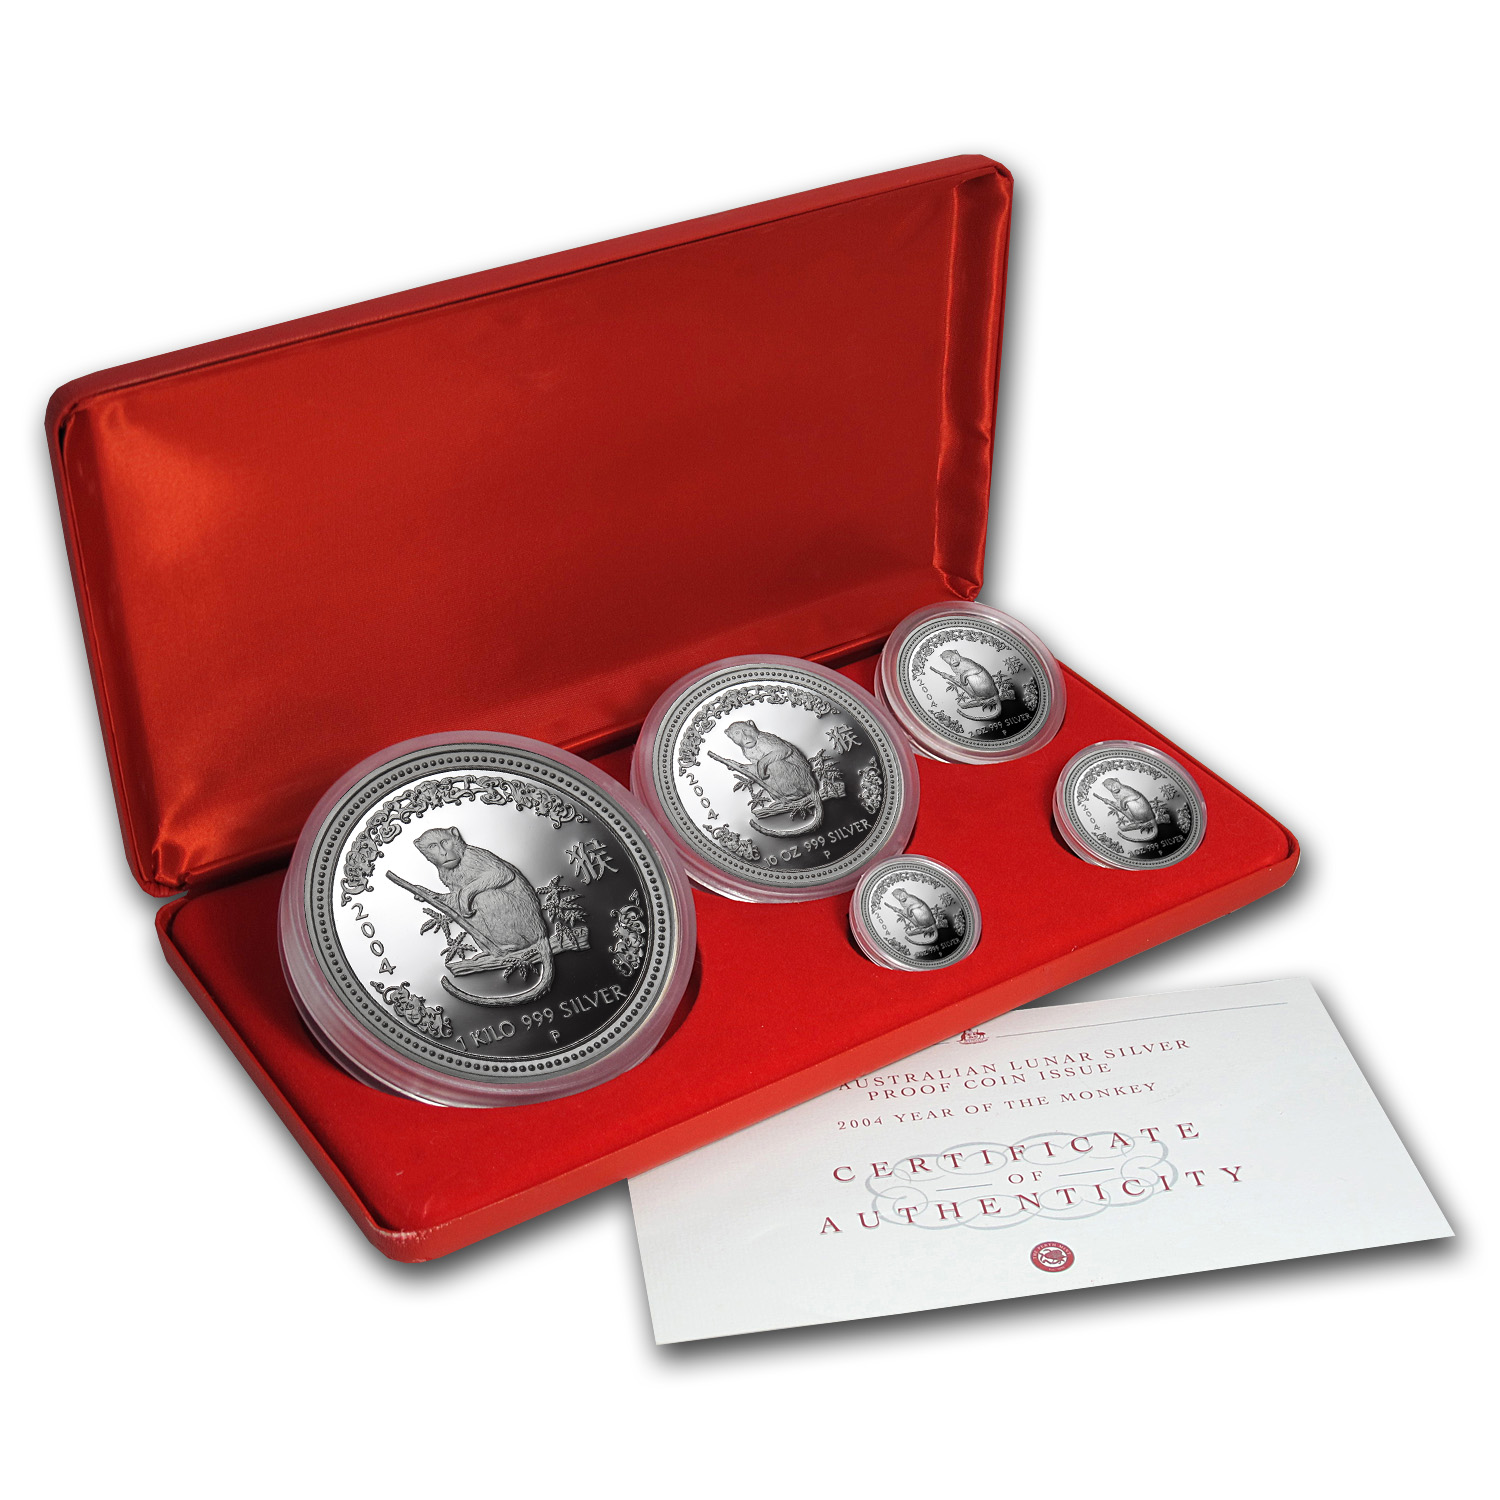 2004 Australia 5-Coin Silver Monkey Proof Set